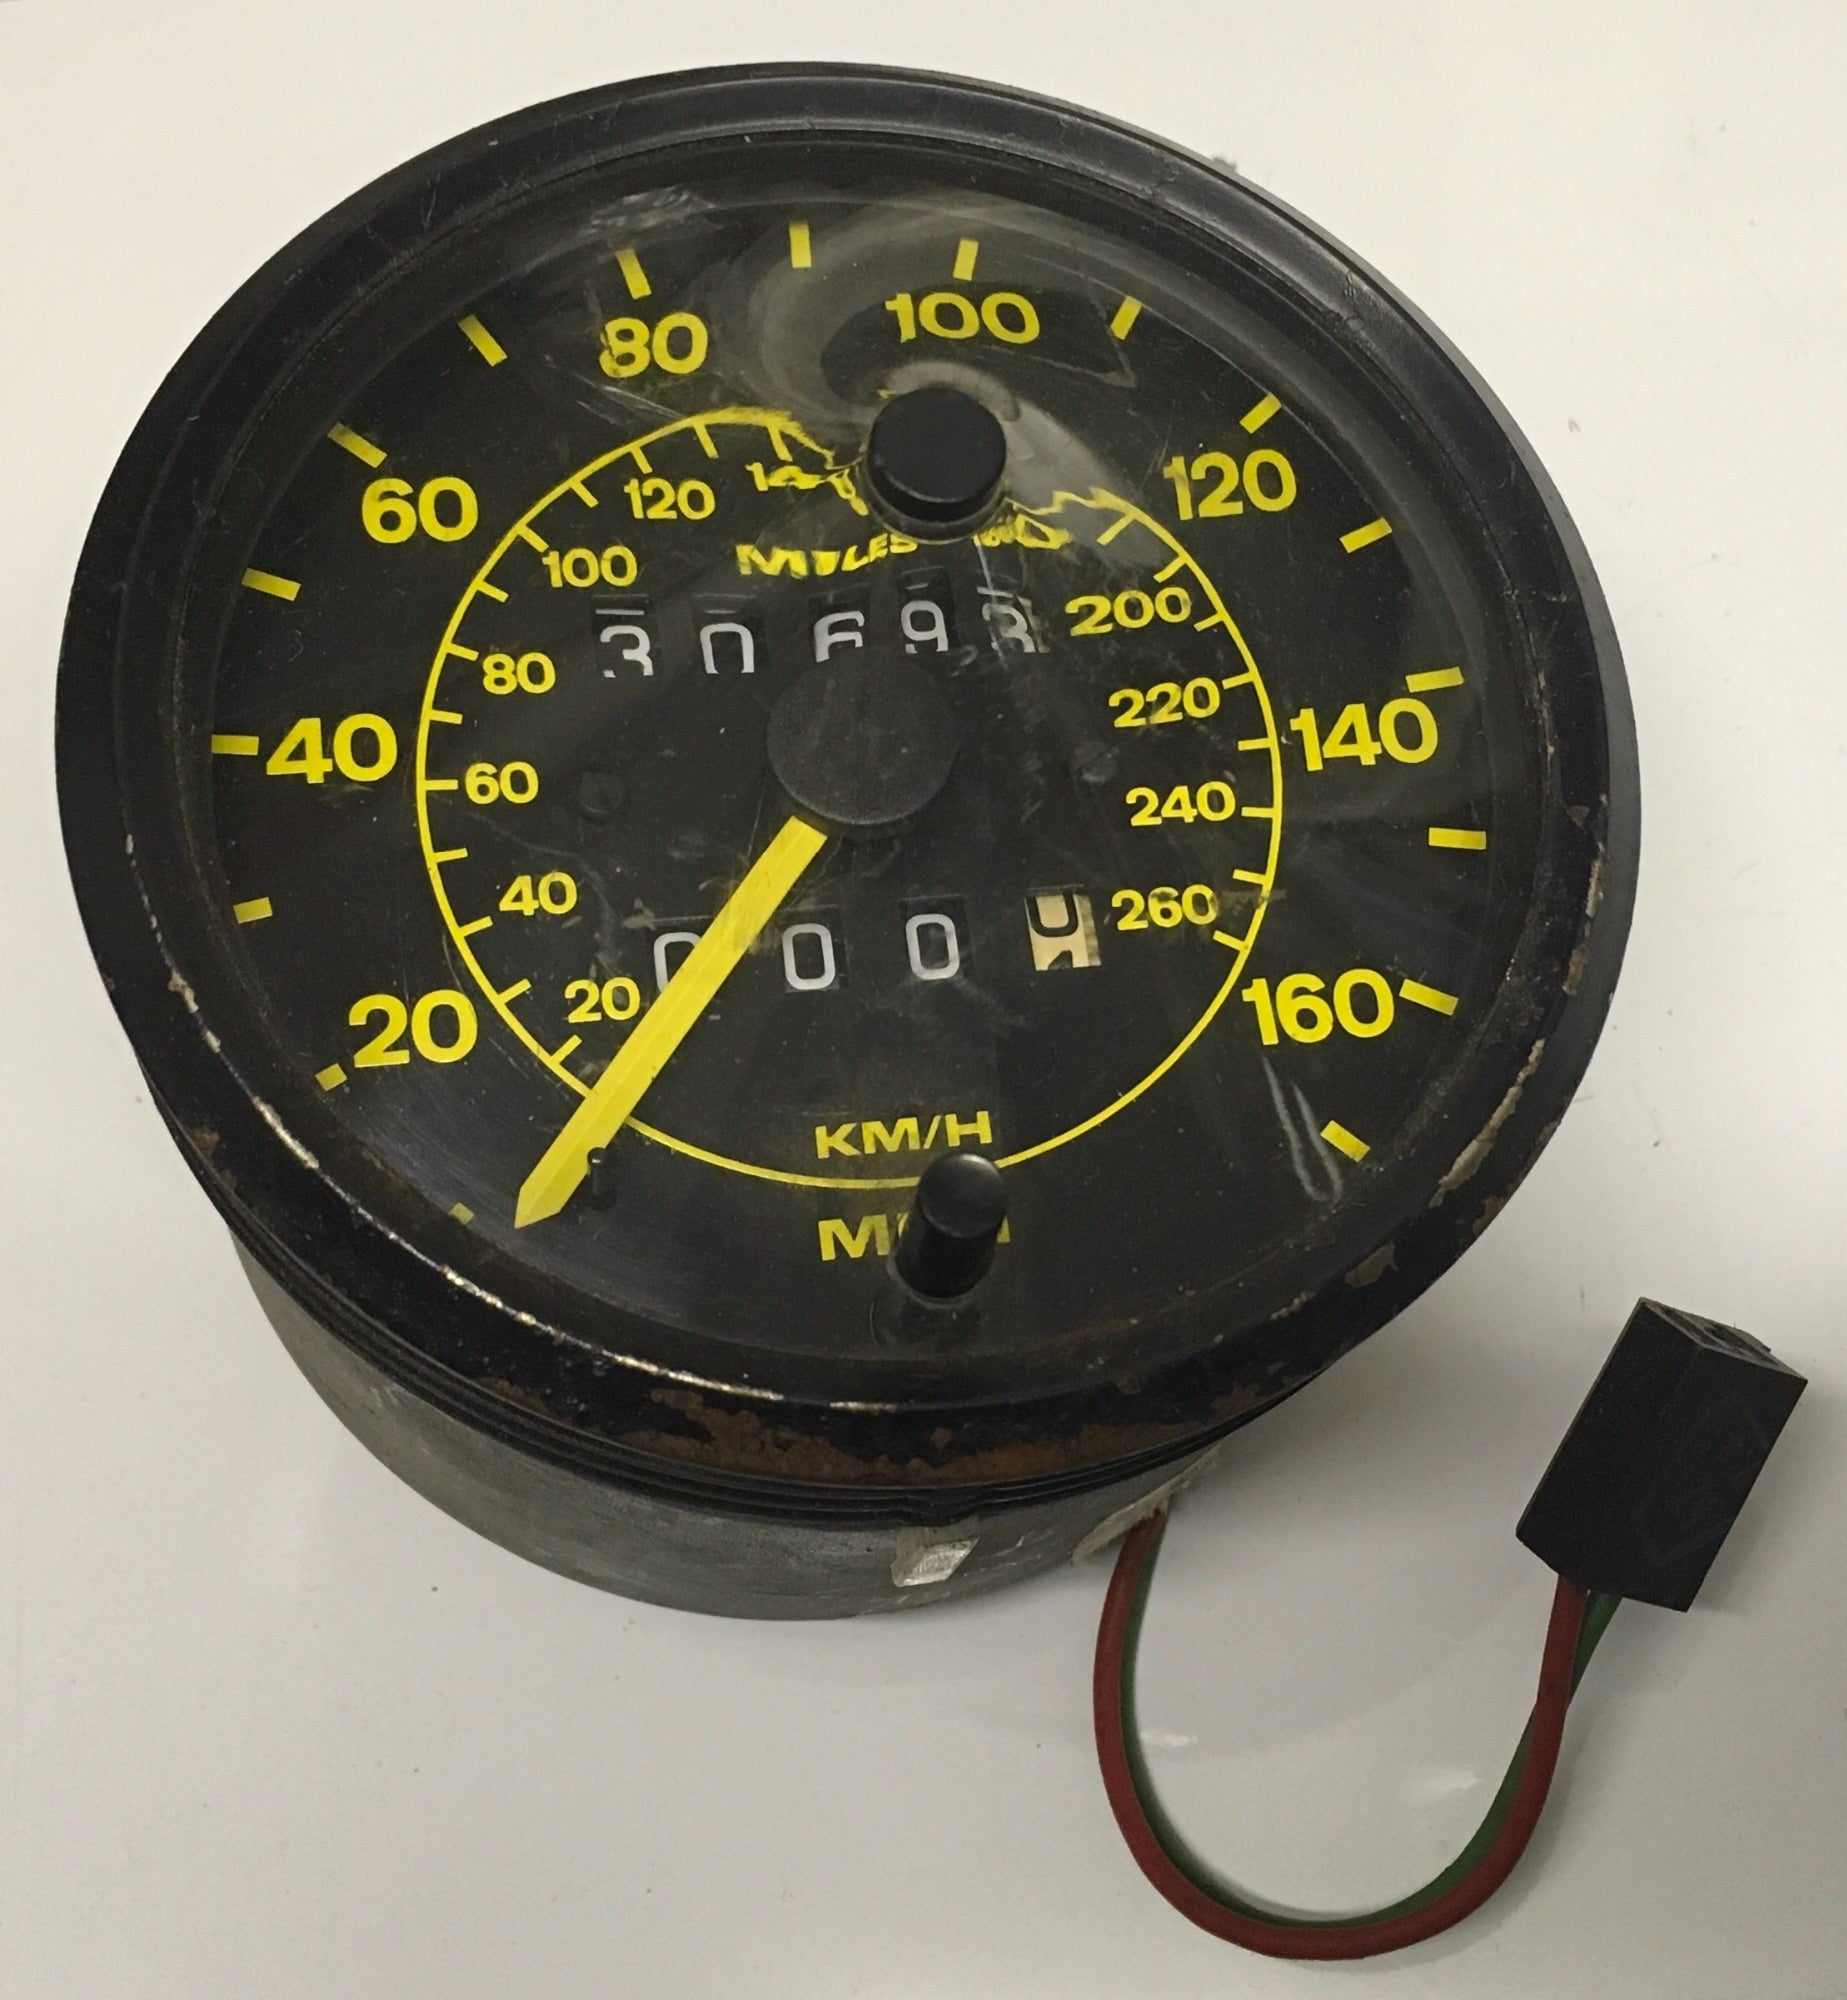 Porsche 944 speedometer showing 30693 miles. Pt No, 94464103600  ((ref green 4)) - Woolies Workshop - Porsche 924 944 spares